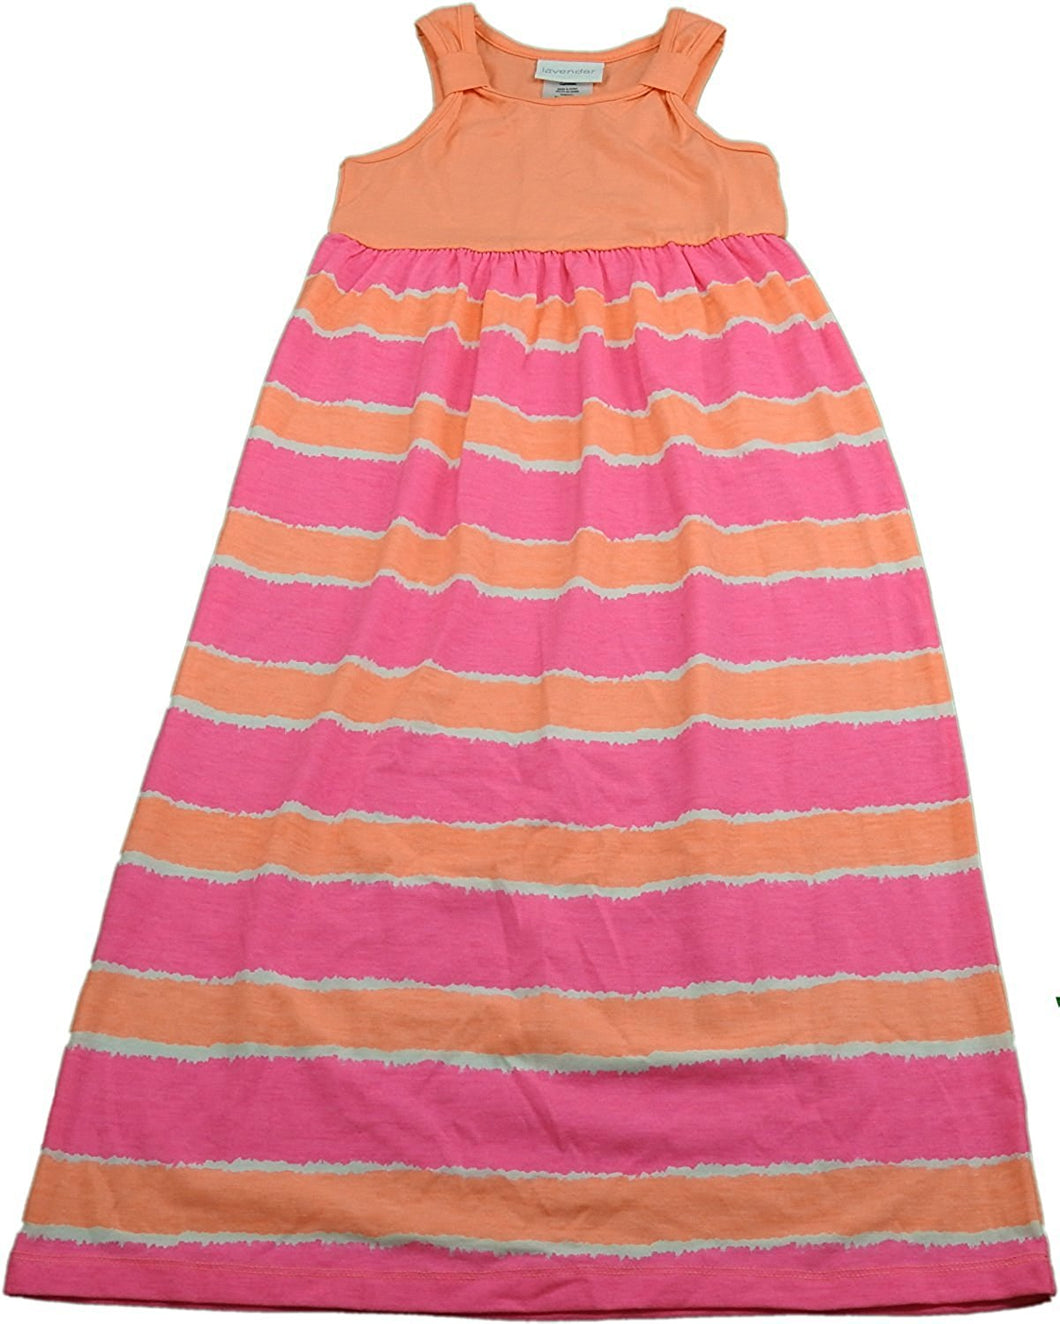 Lavender By Us Angels Girls Size 4/5 Sleeveless Dress, Peach